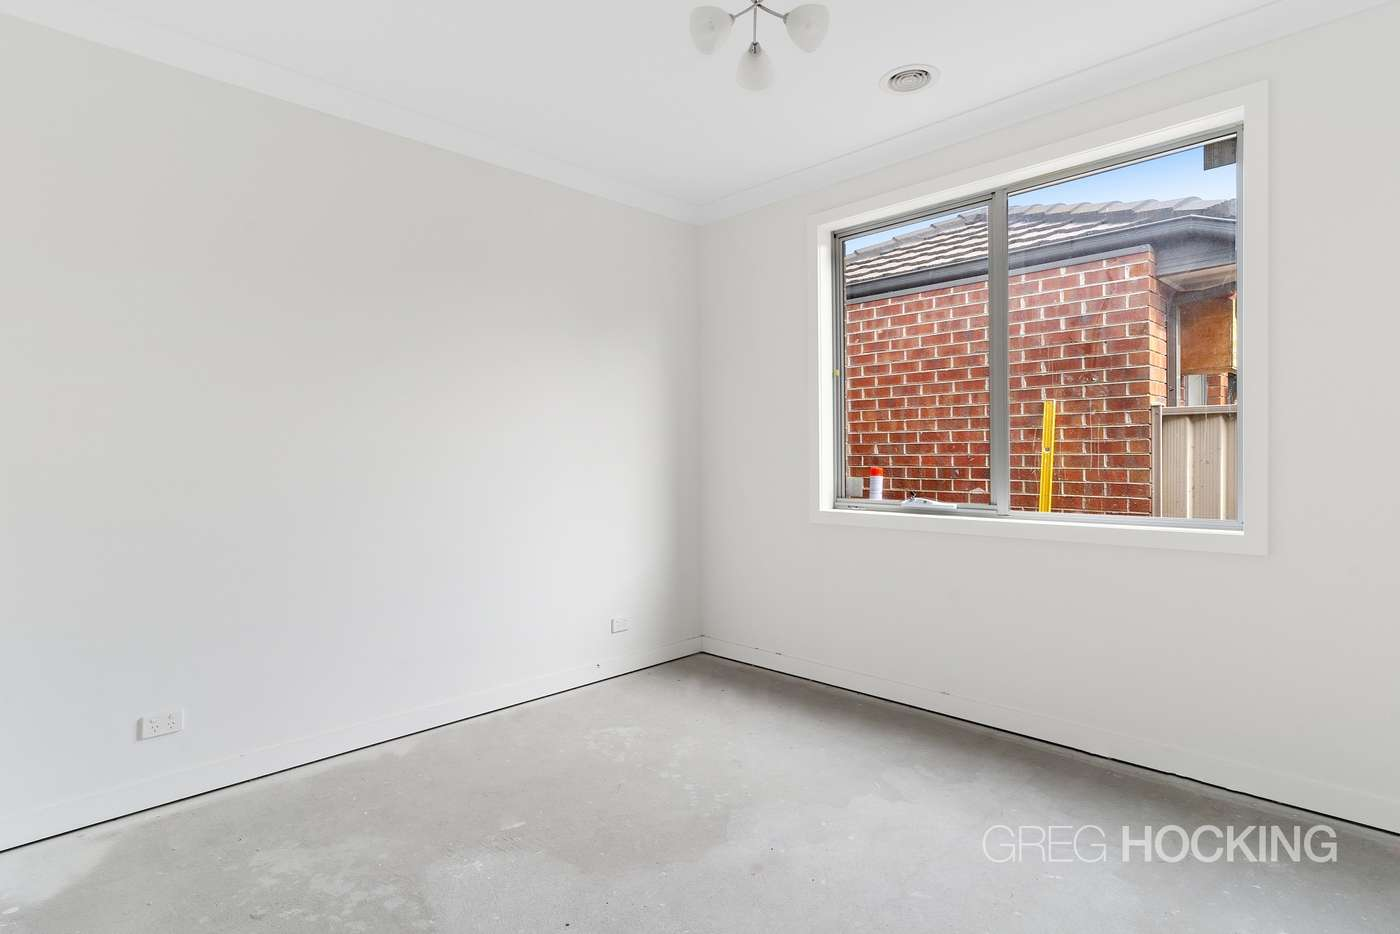 Sixth view of Homely house listing, 51 Riverside Avenue, Avondale Heights VIC 3034